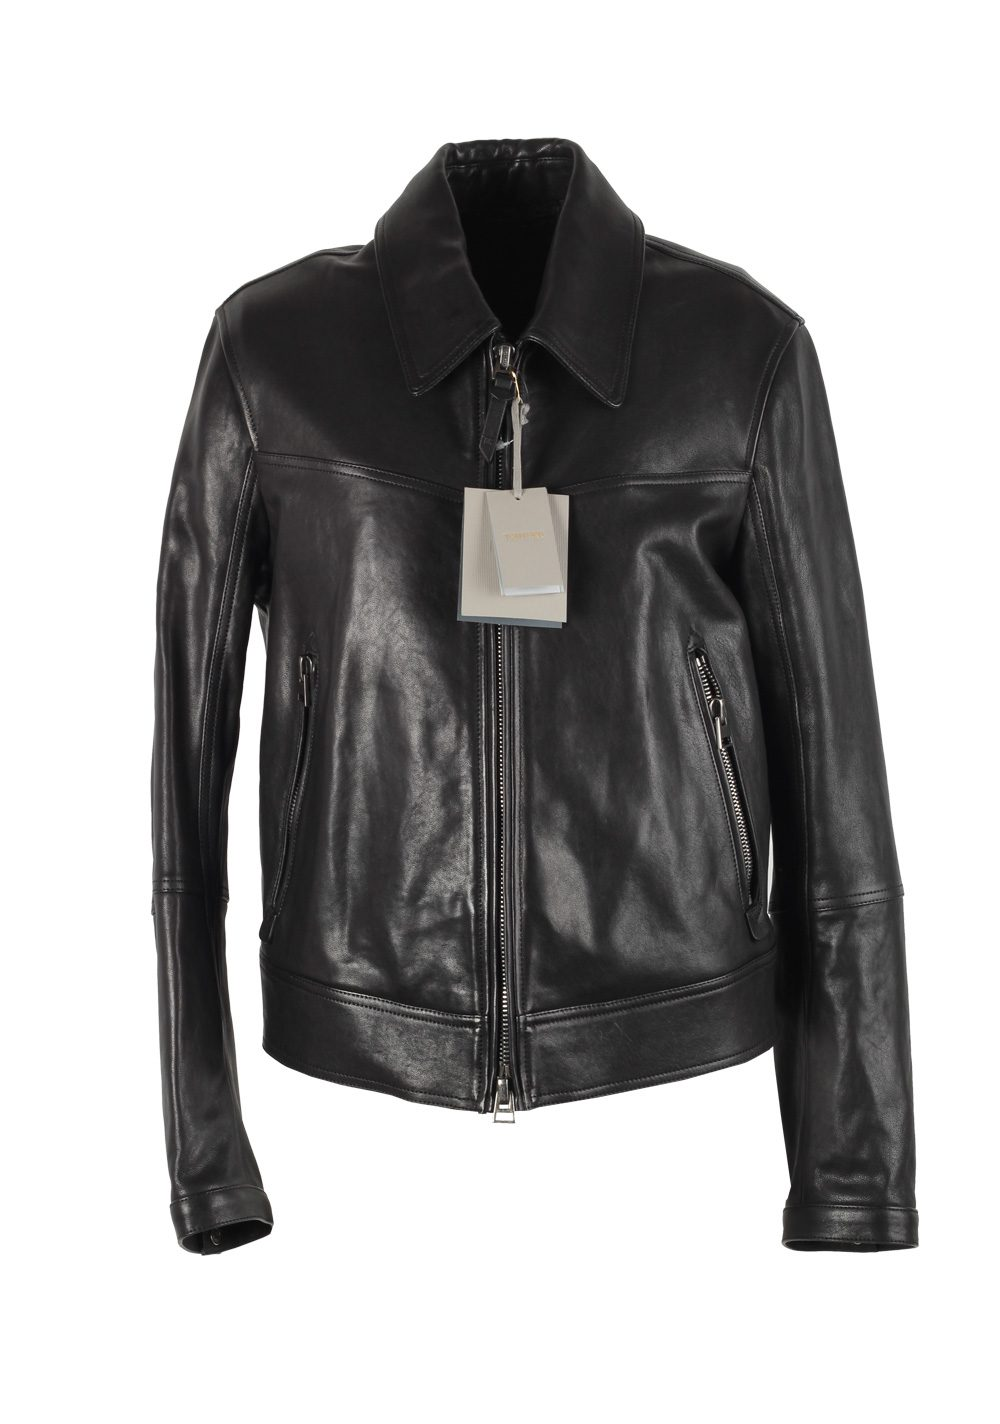 TOM FORD Black Leather Biker Coat Jacket Size 50 / 40R U.S. Outerwear | Costume Limité